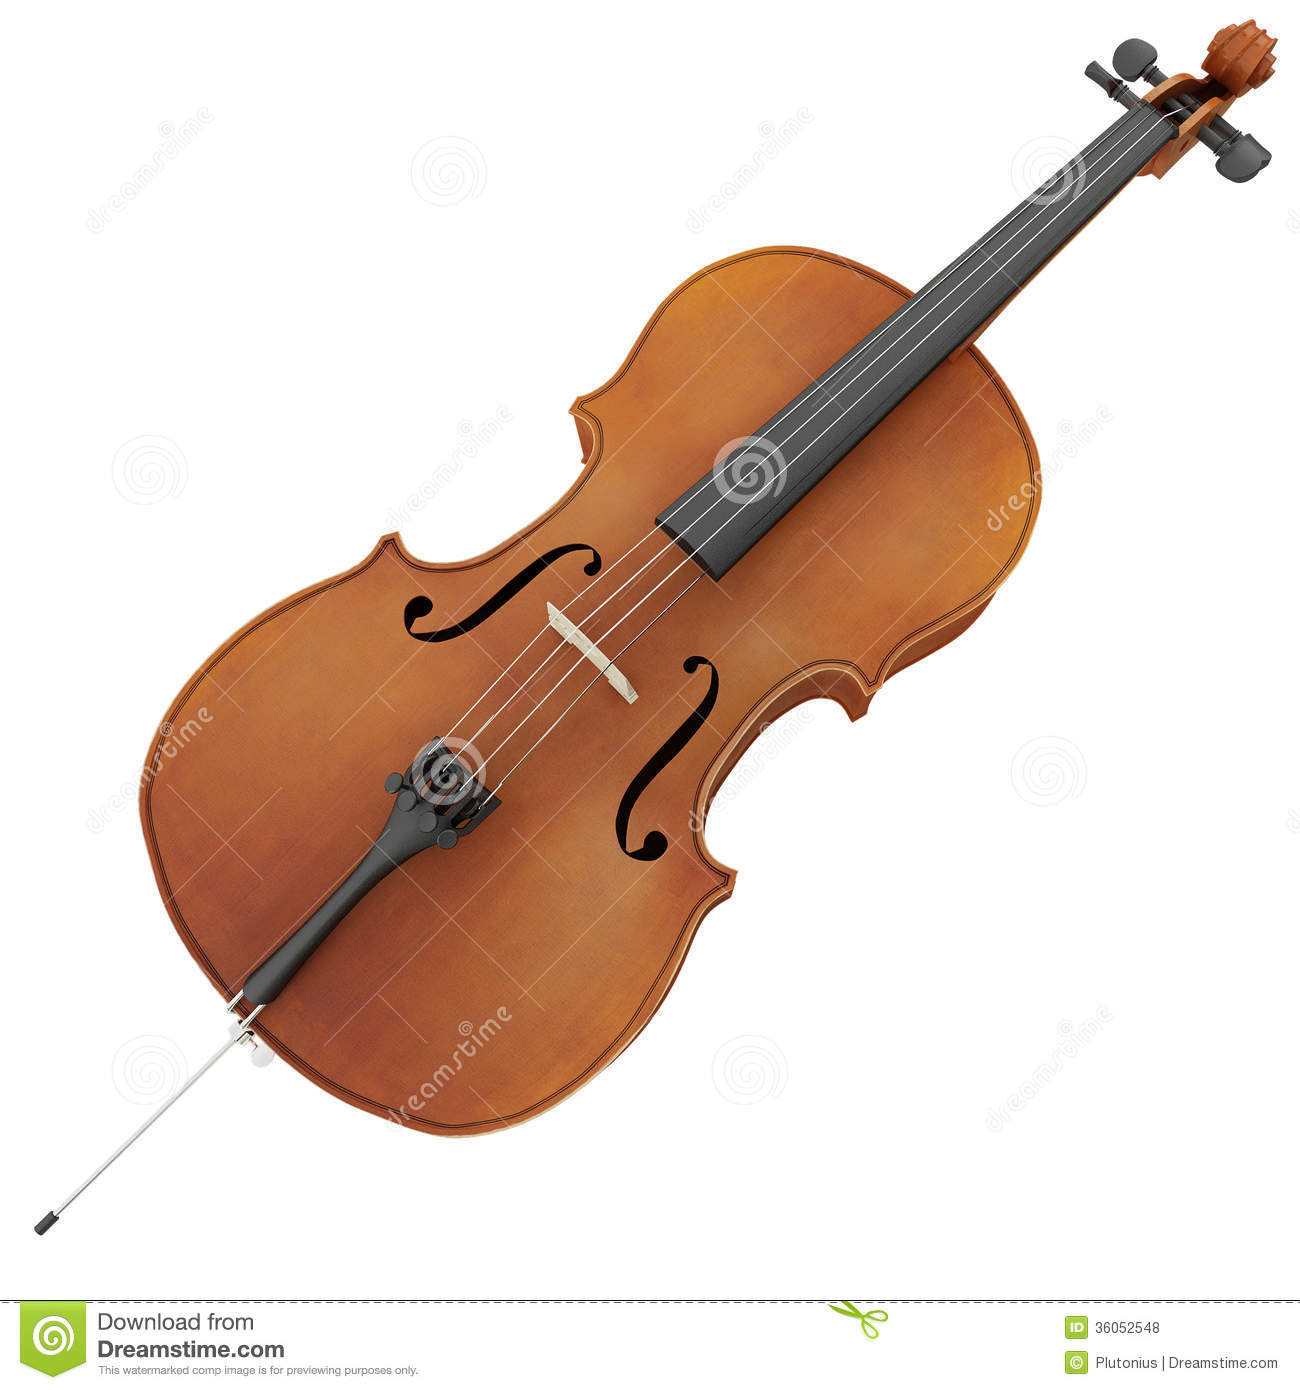 Viola Instrument Clipart Cello Clipart Cello Instrument - Clipart Kid